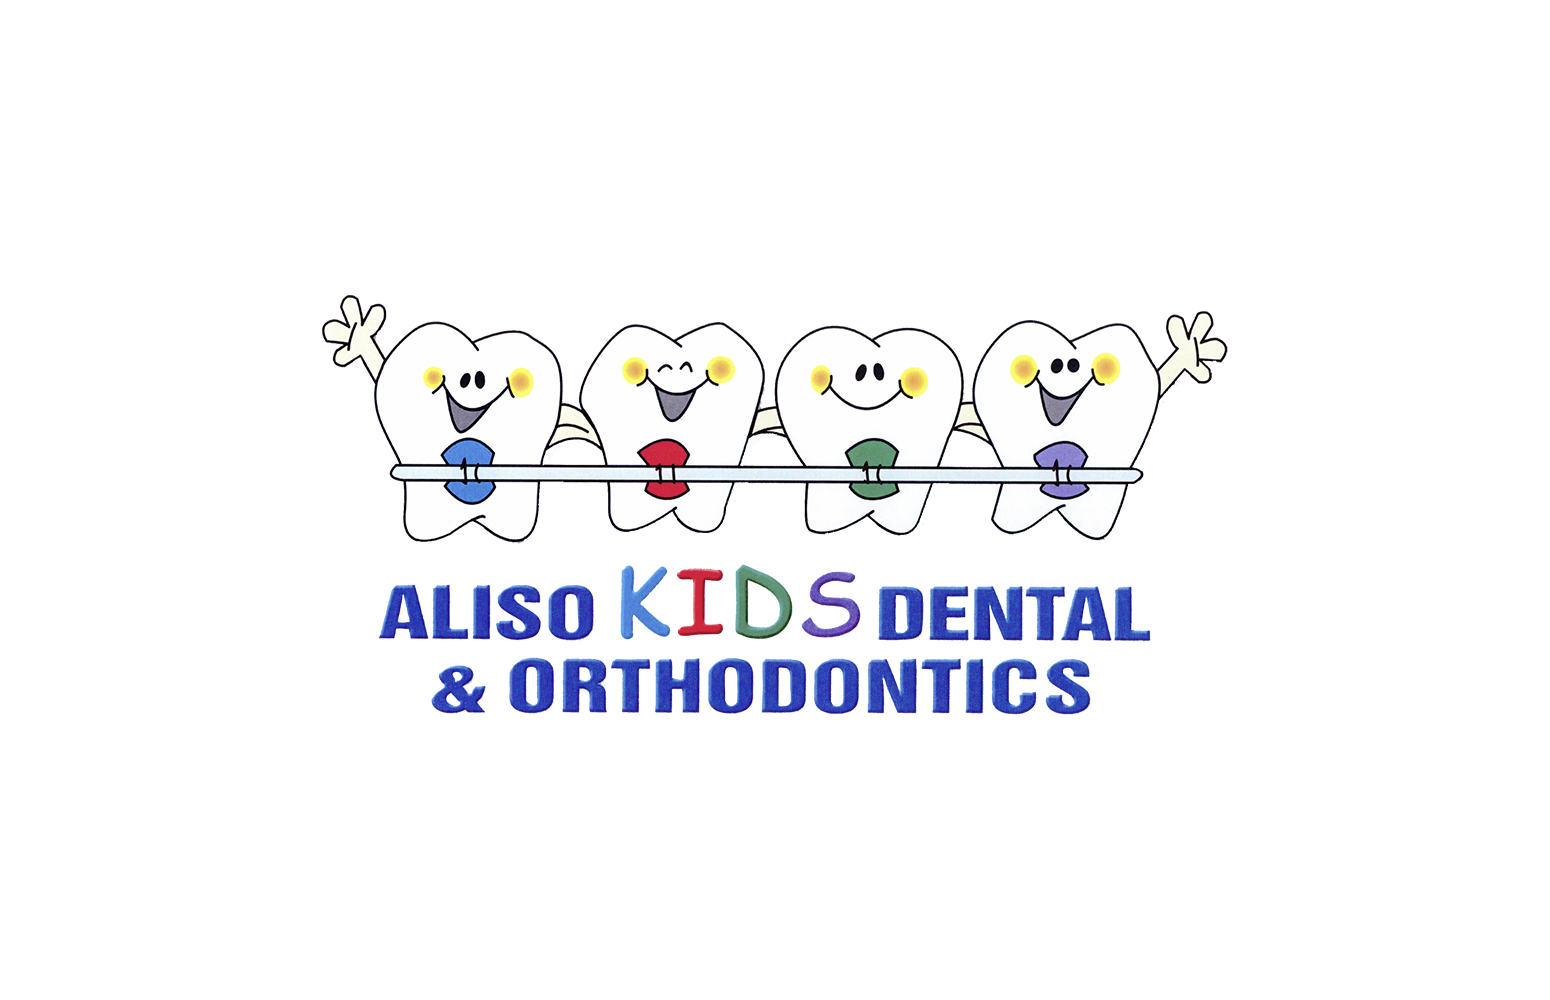 Aliso Kids Dental & Orthodontics